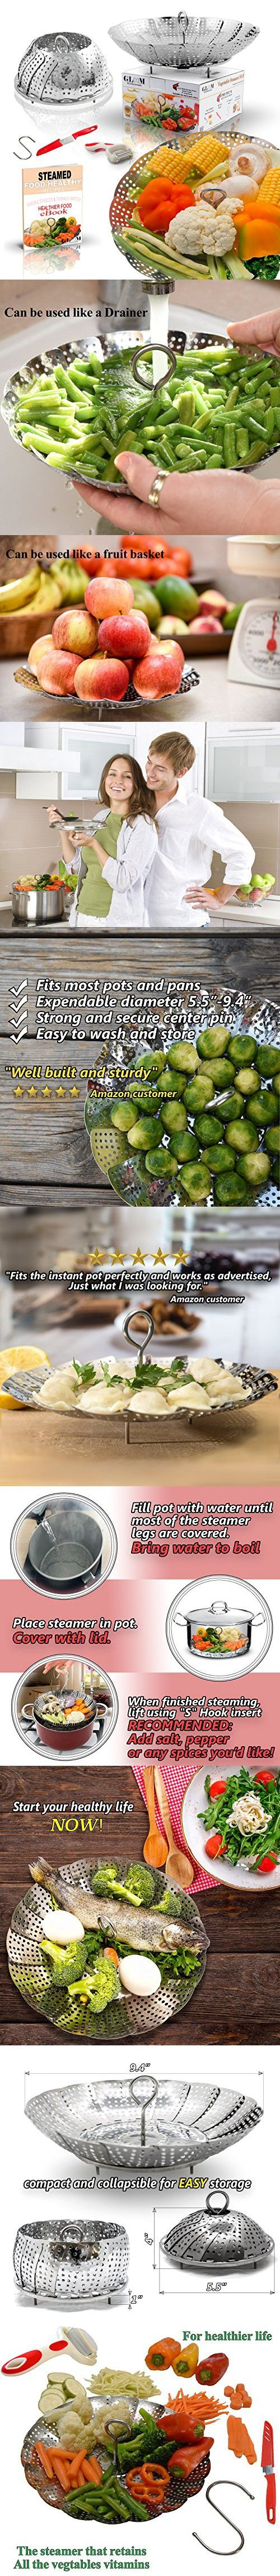 Upgraded Stainless Steel Vegetable Steamer Basket  Fits Instant Pot Pressure Cooker  Plus BONUS ACCESSORIES  Safety Tool, Multifunction Peeler, Pairing Knife with Cover, and Healthy Recipes eBook